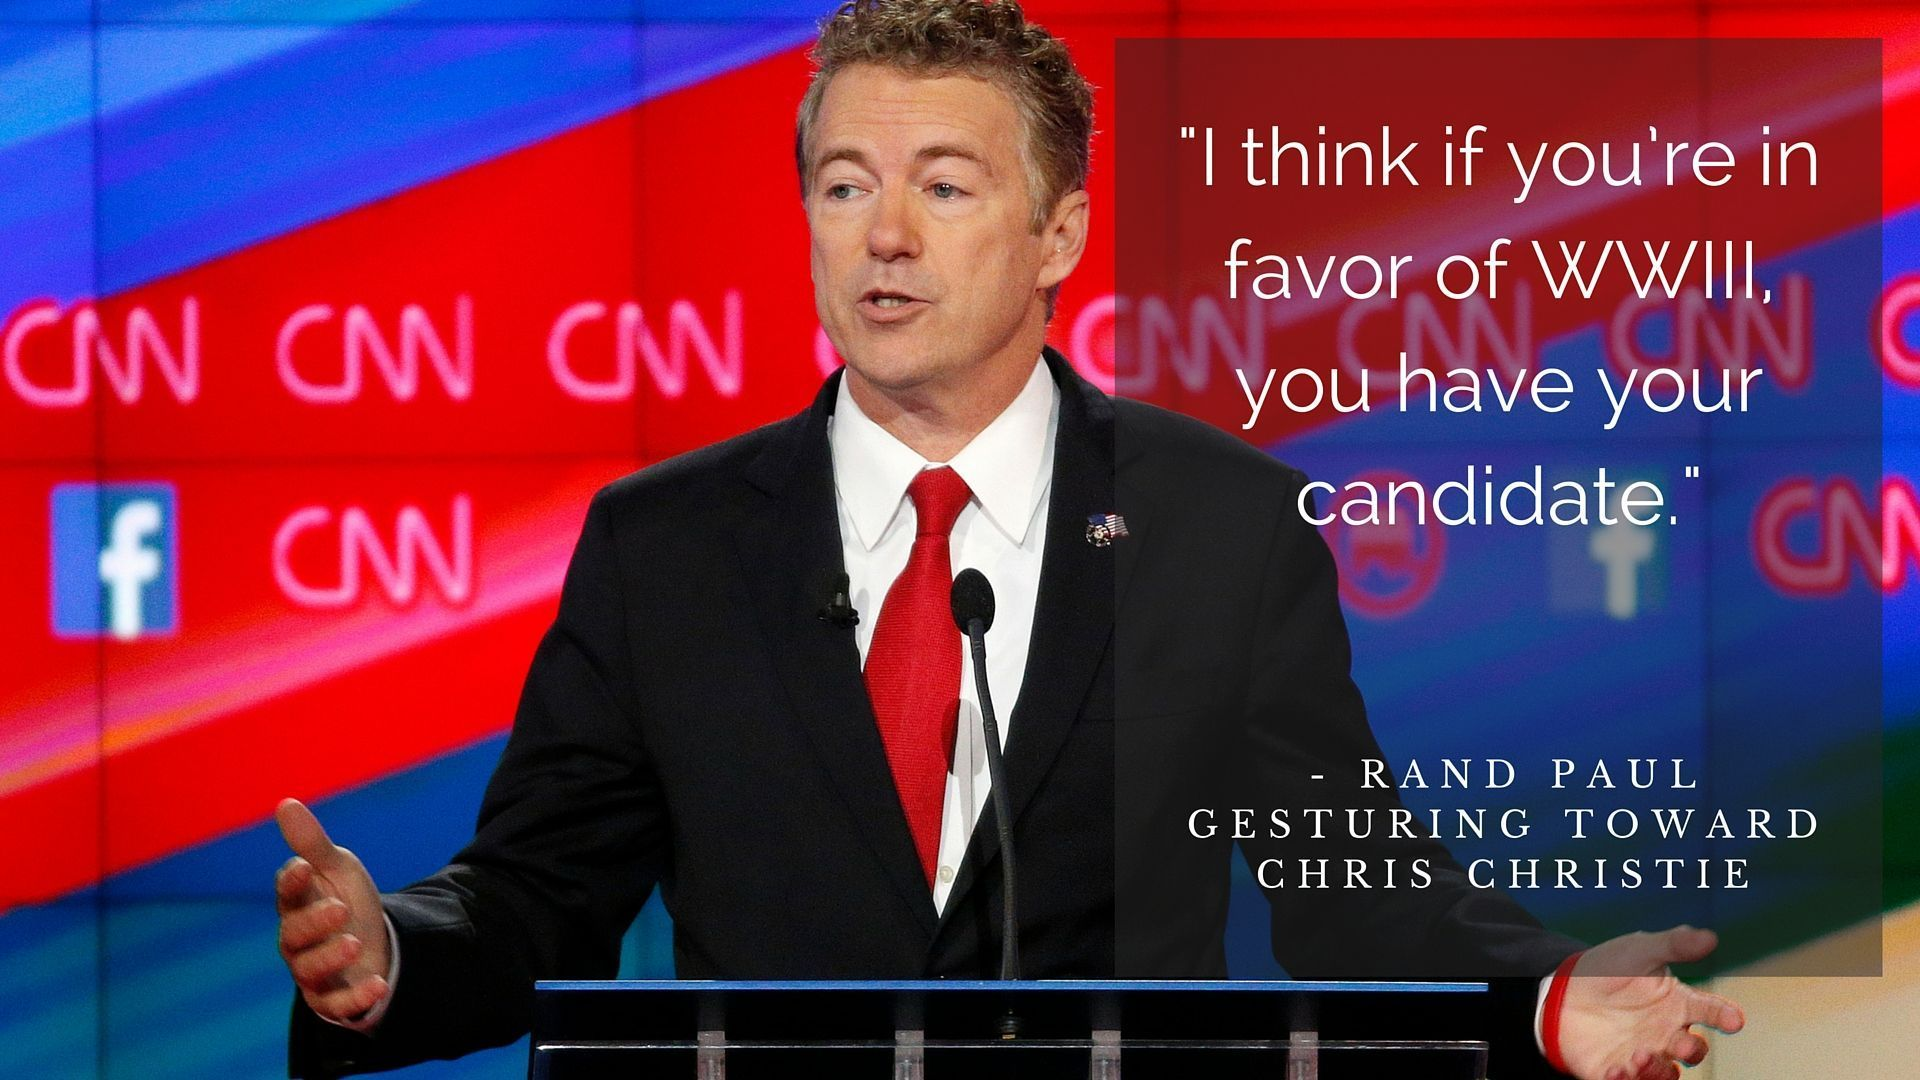 When he had this memorable moment during that same debate.